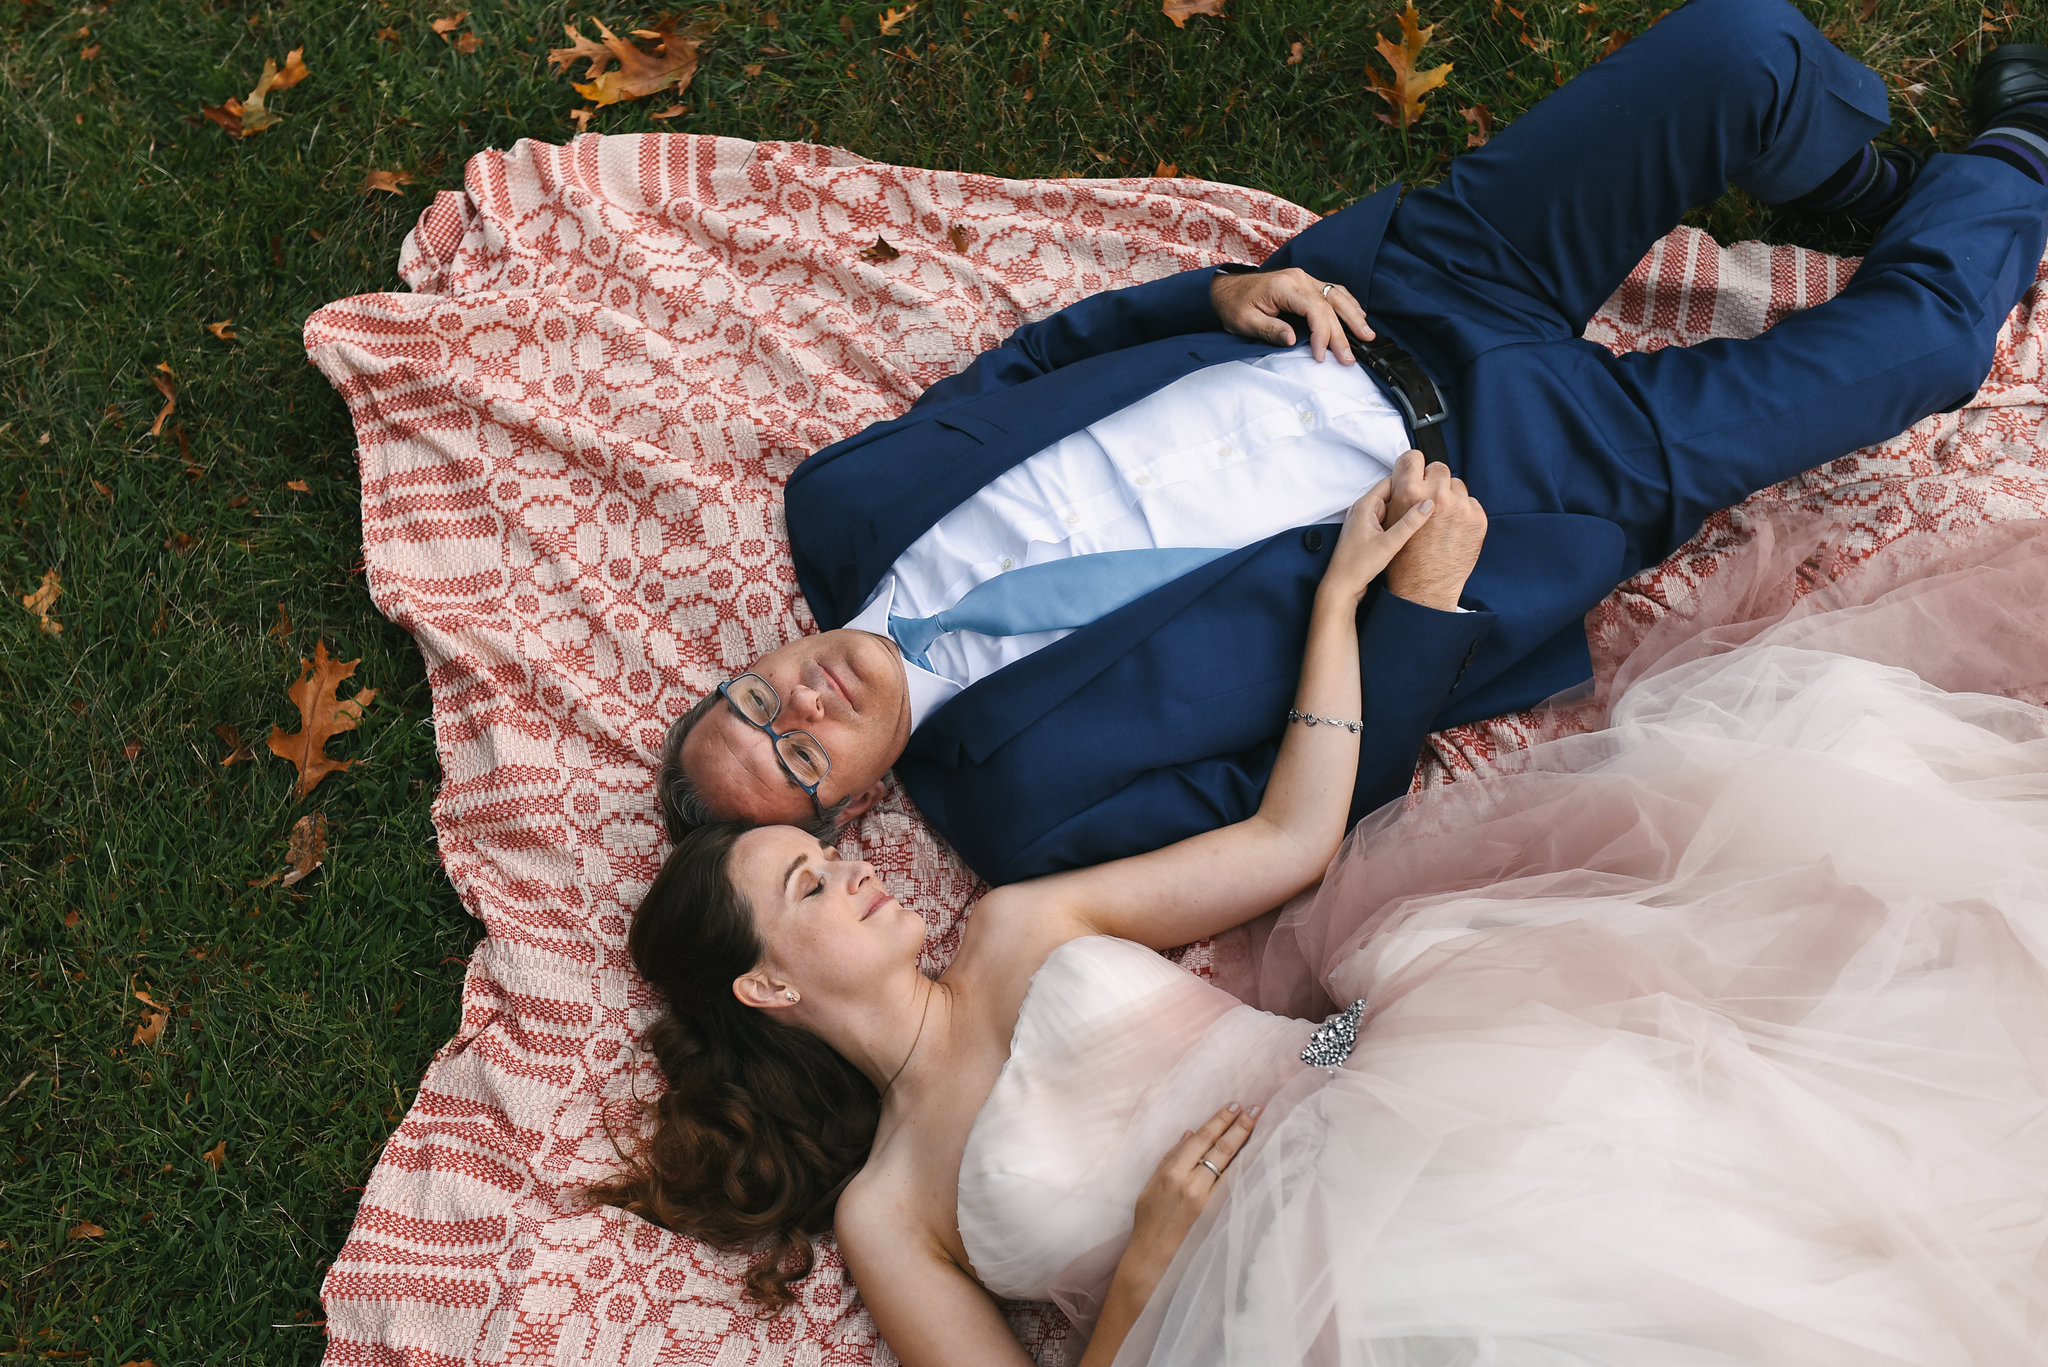 Vintage, Rustic, Germantown, Baltimore Wedding Photographer, Casual, Outdoor Wedding, Whimsical, Campground, Bride and Groom, Secluded Moments, Outdoor Portrait, Laying in Grass, Blush Wedding Dress